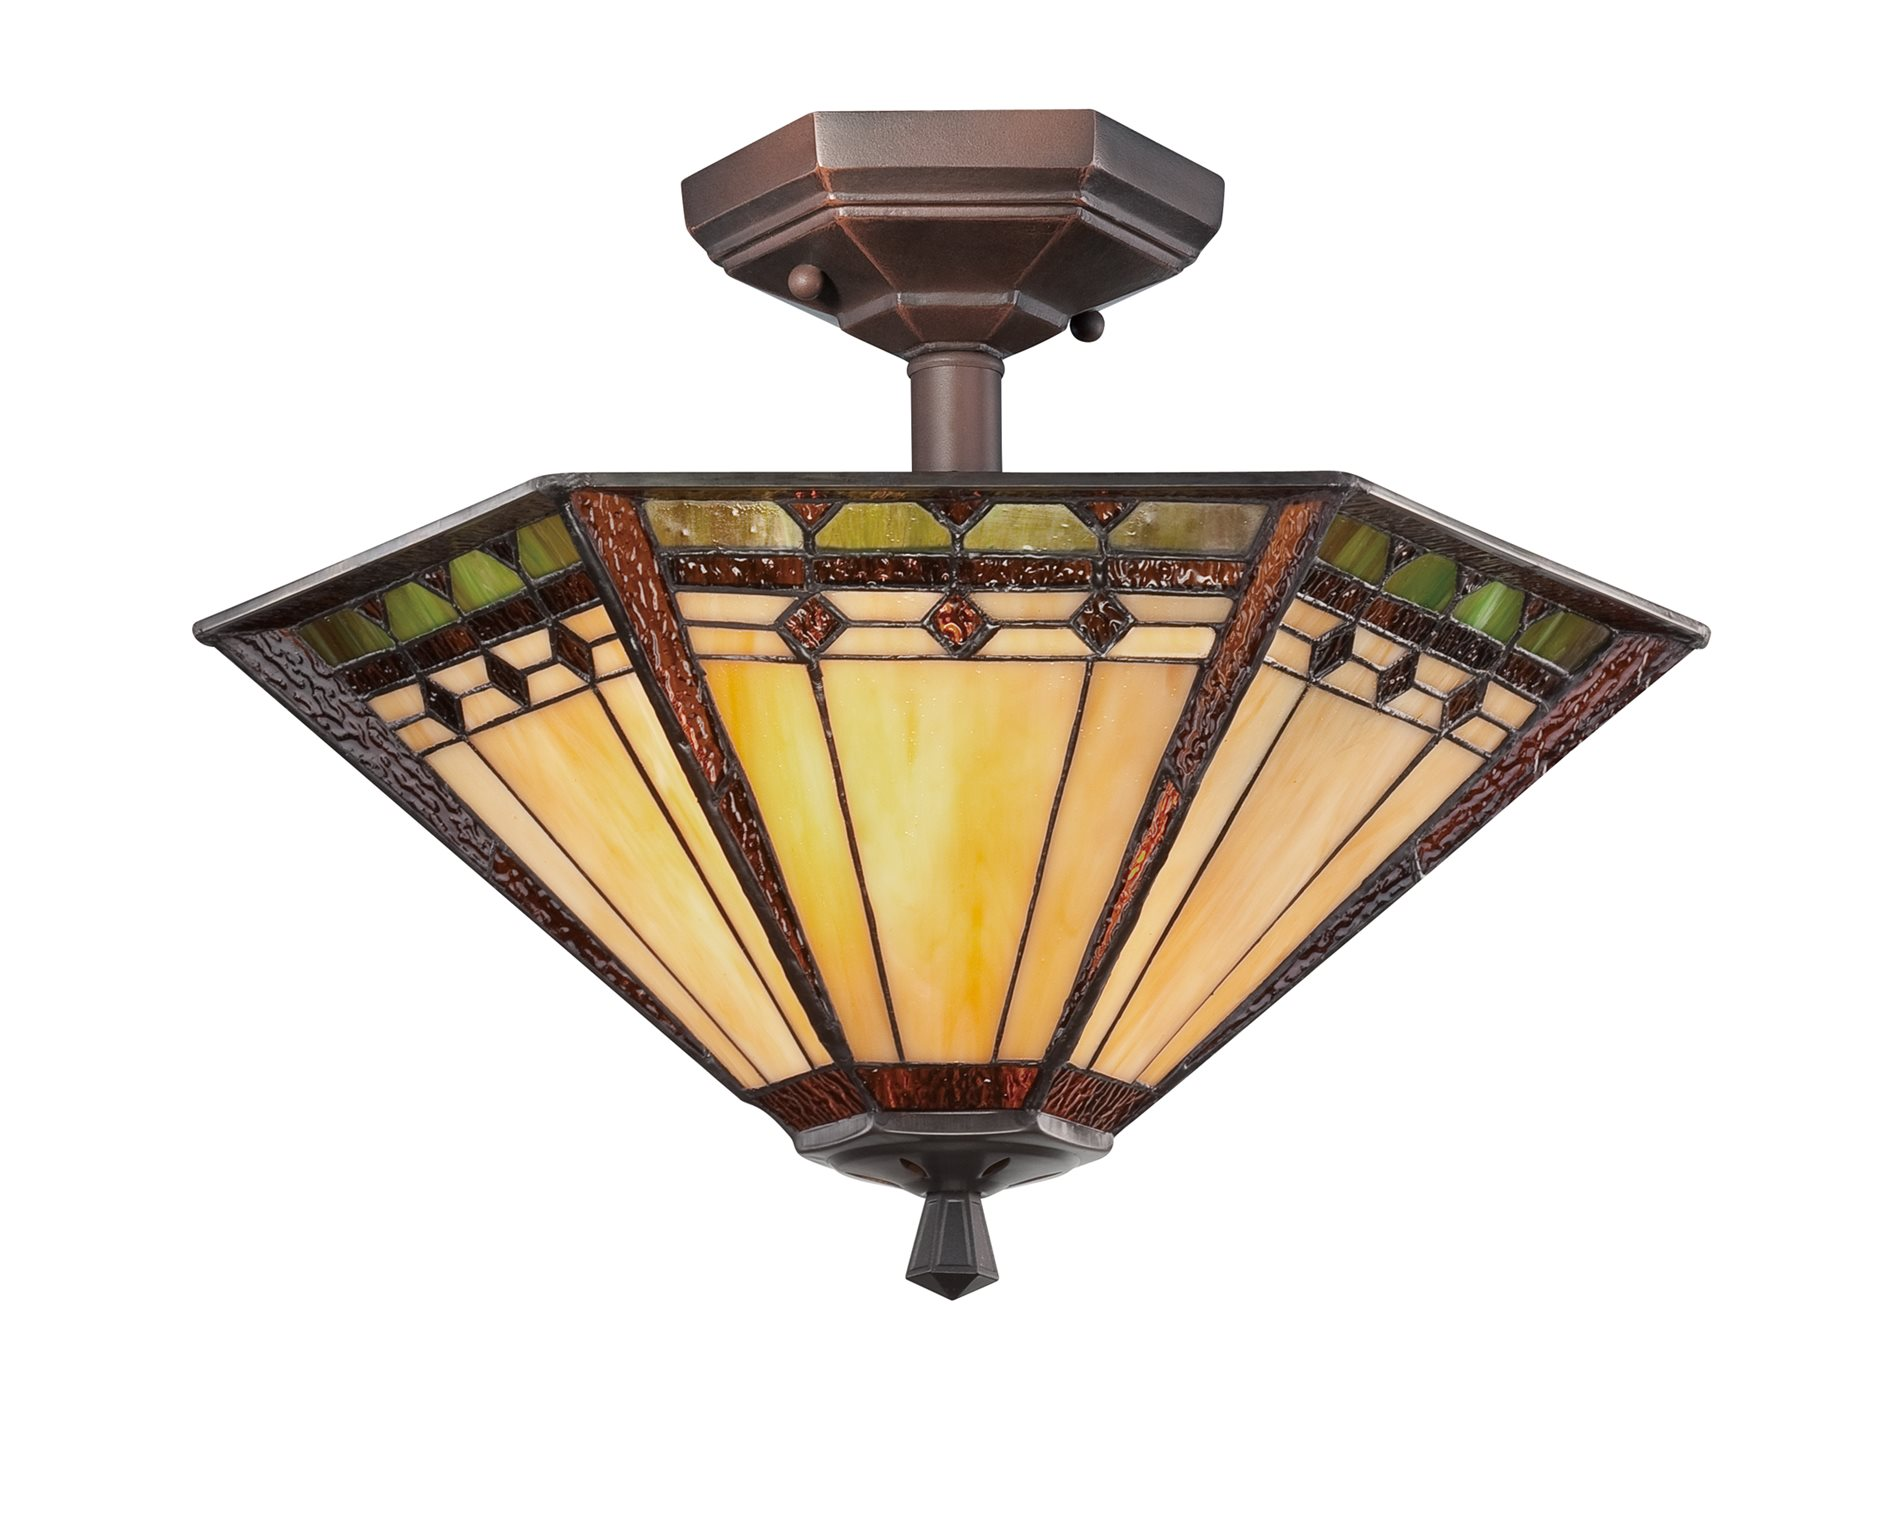 Quoizel TFAN1714RS Arden Tiffany Semi Flush Mount Ceiling